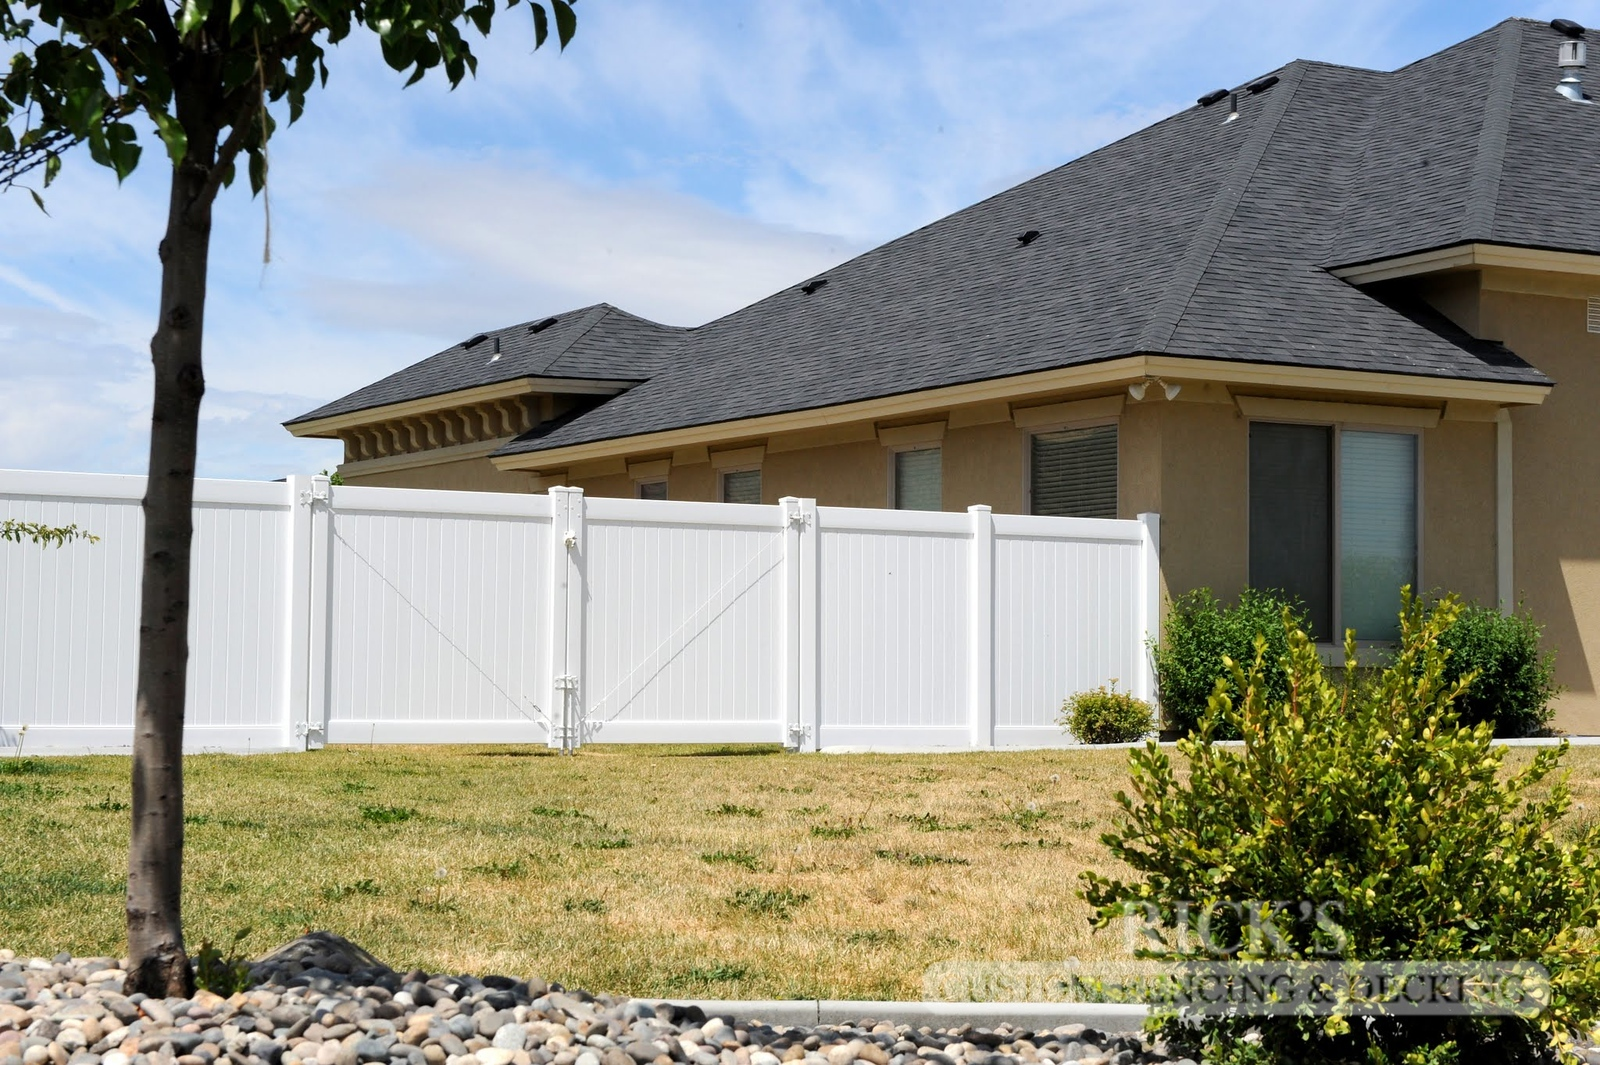 3004 - Vinyl Privacy Fencing